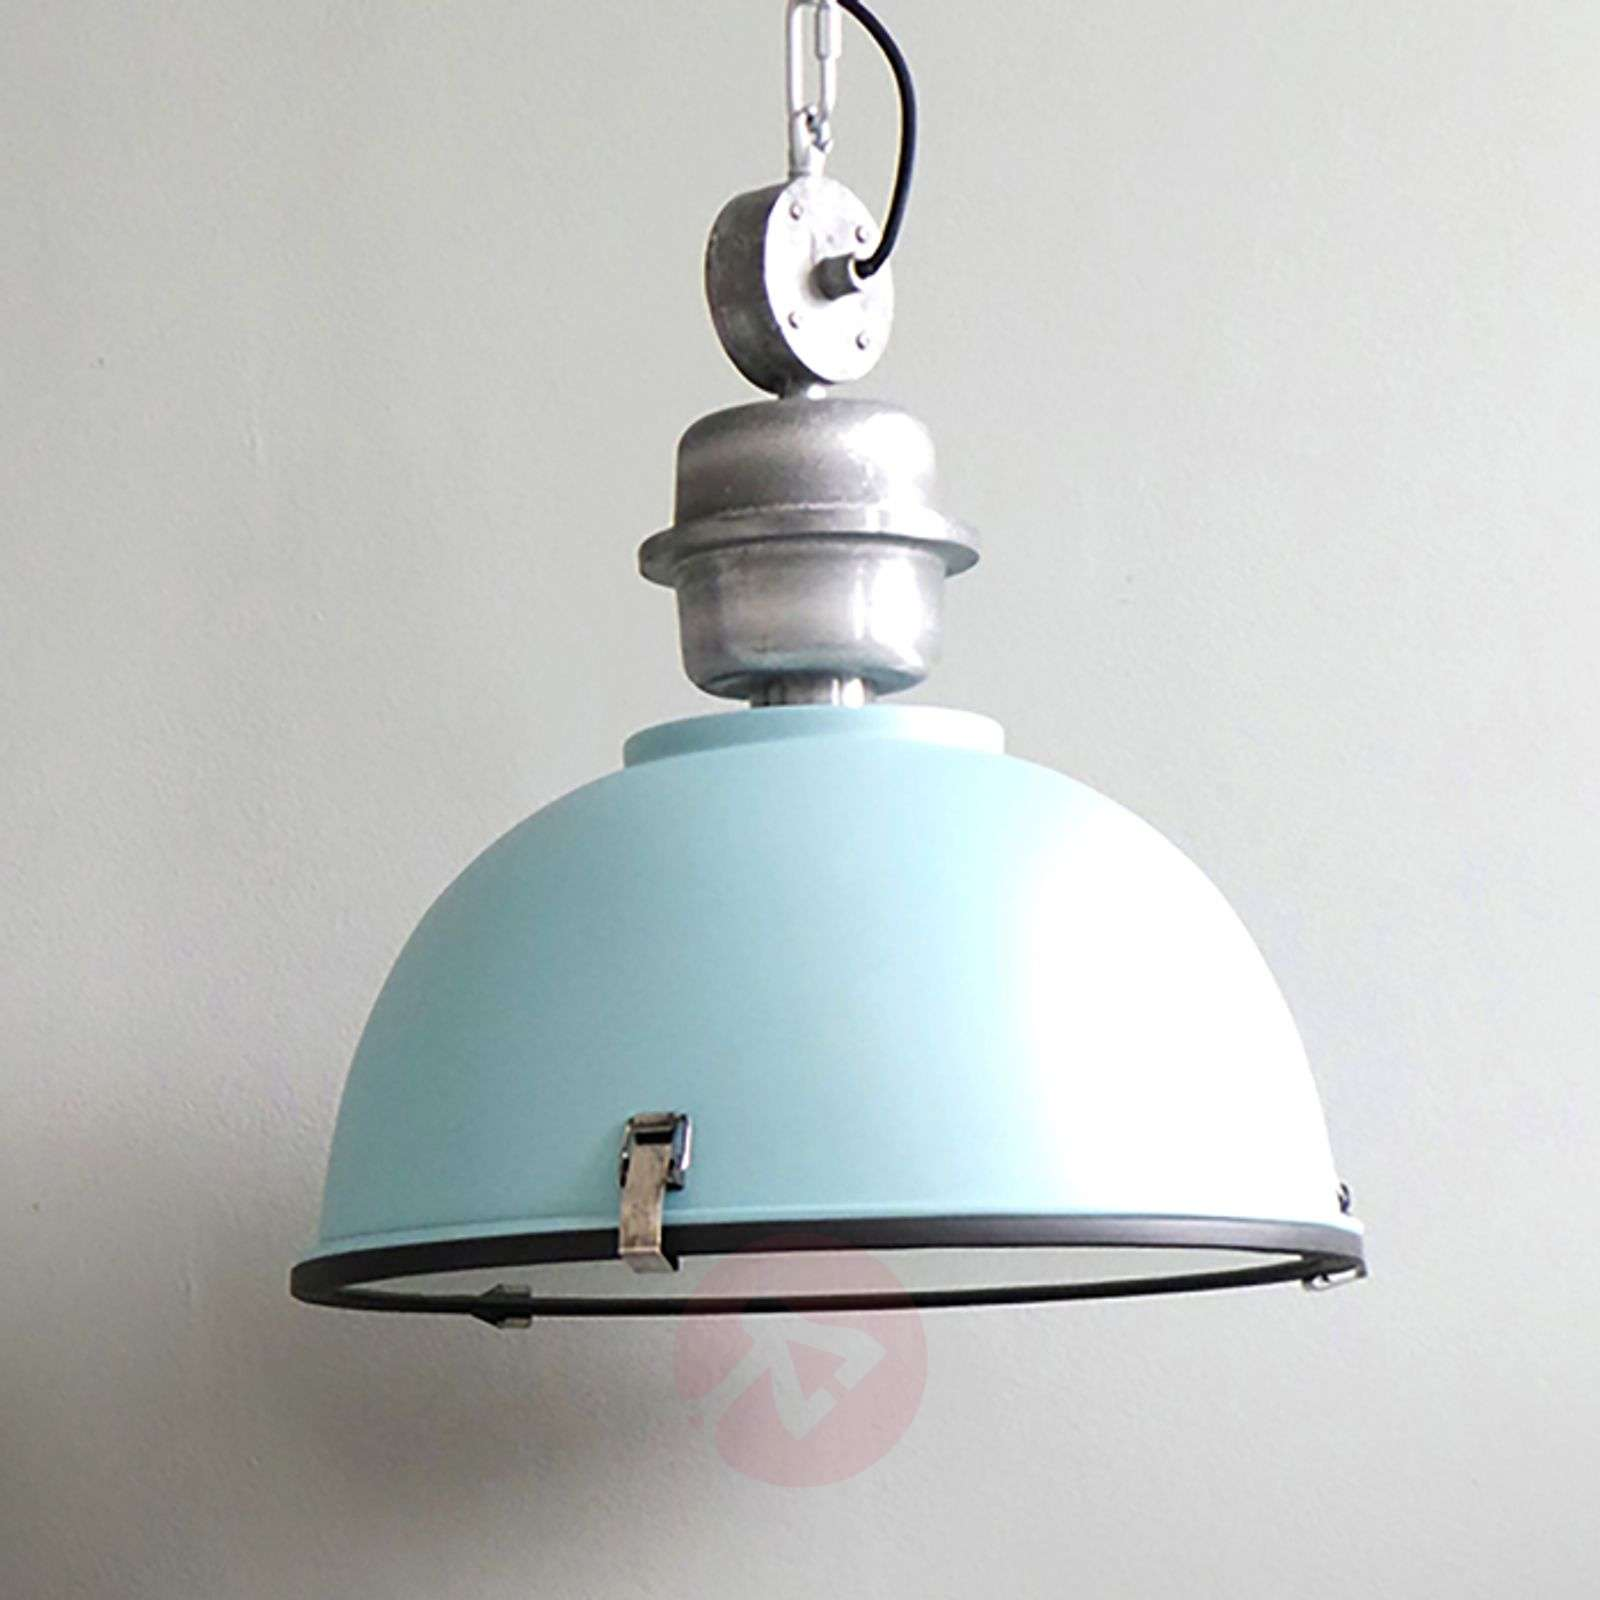 for sale industrial at from pendant philips vintage pamono lamp